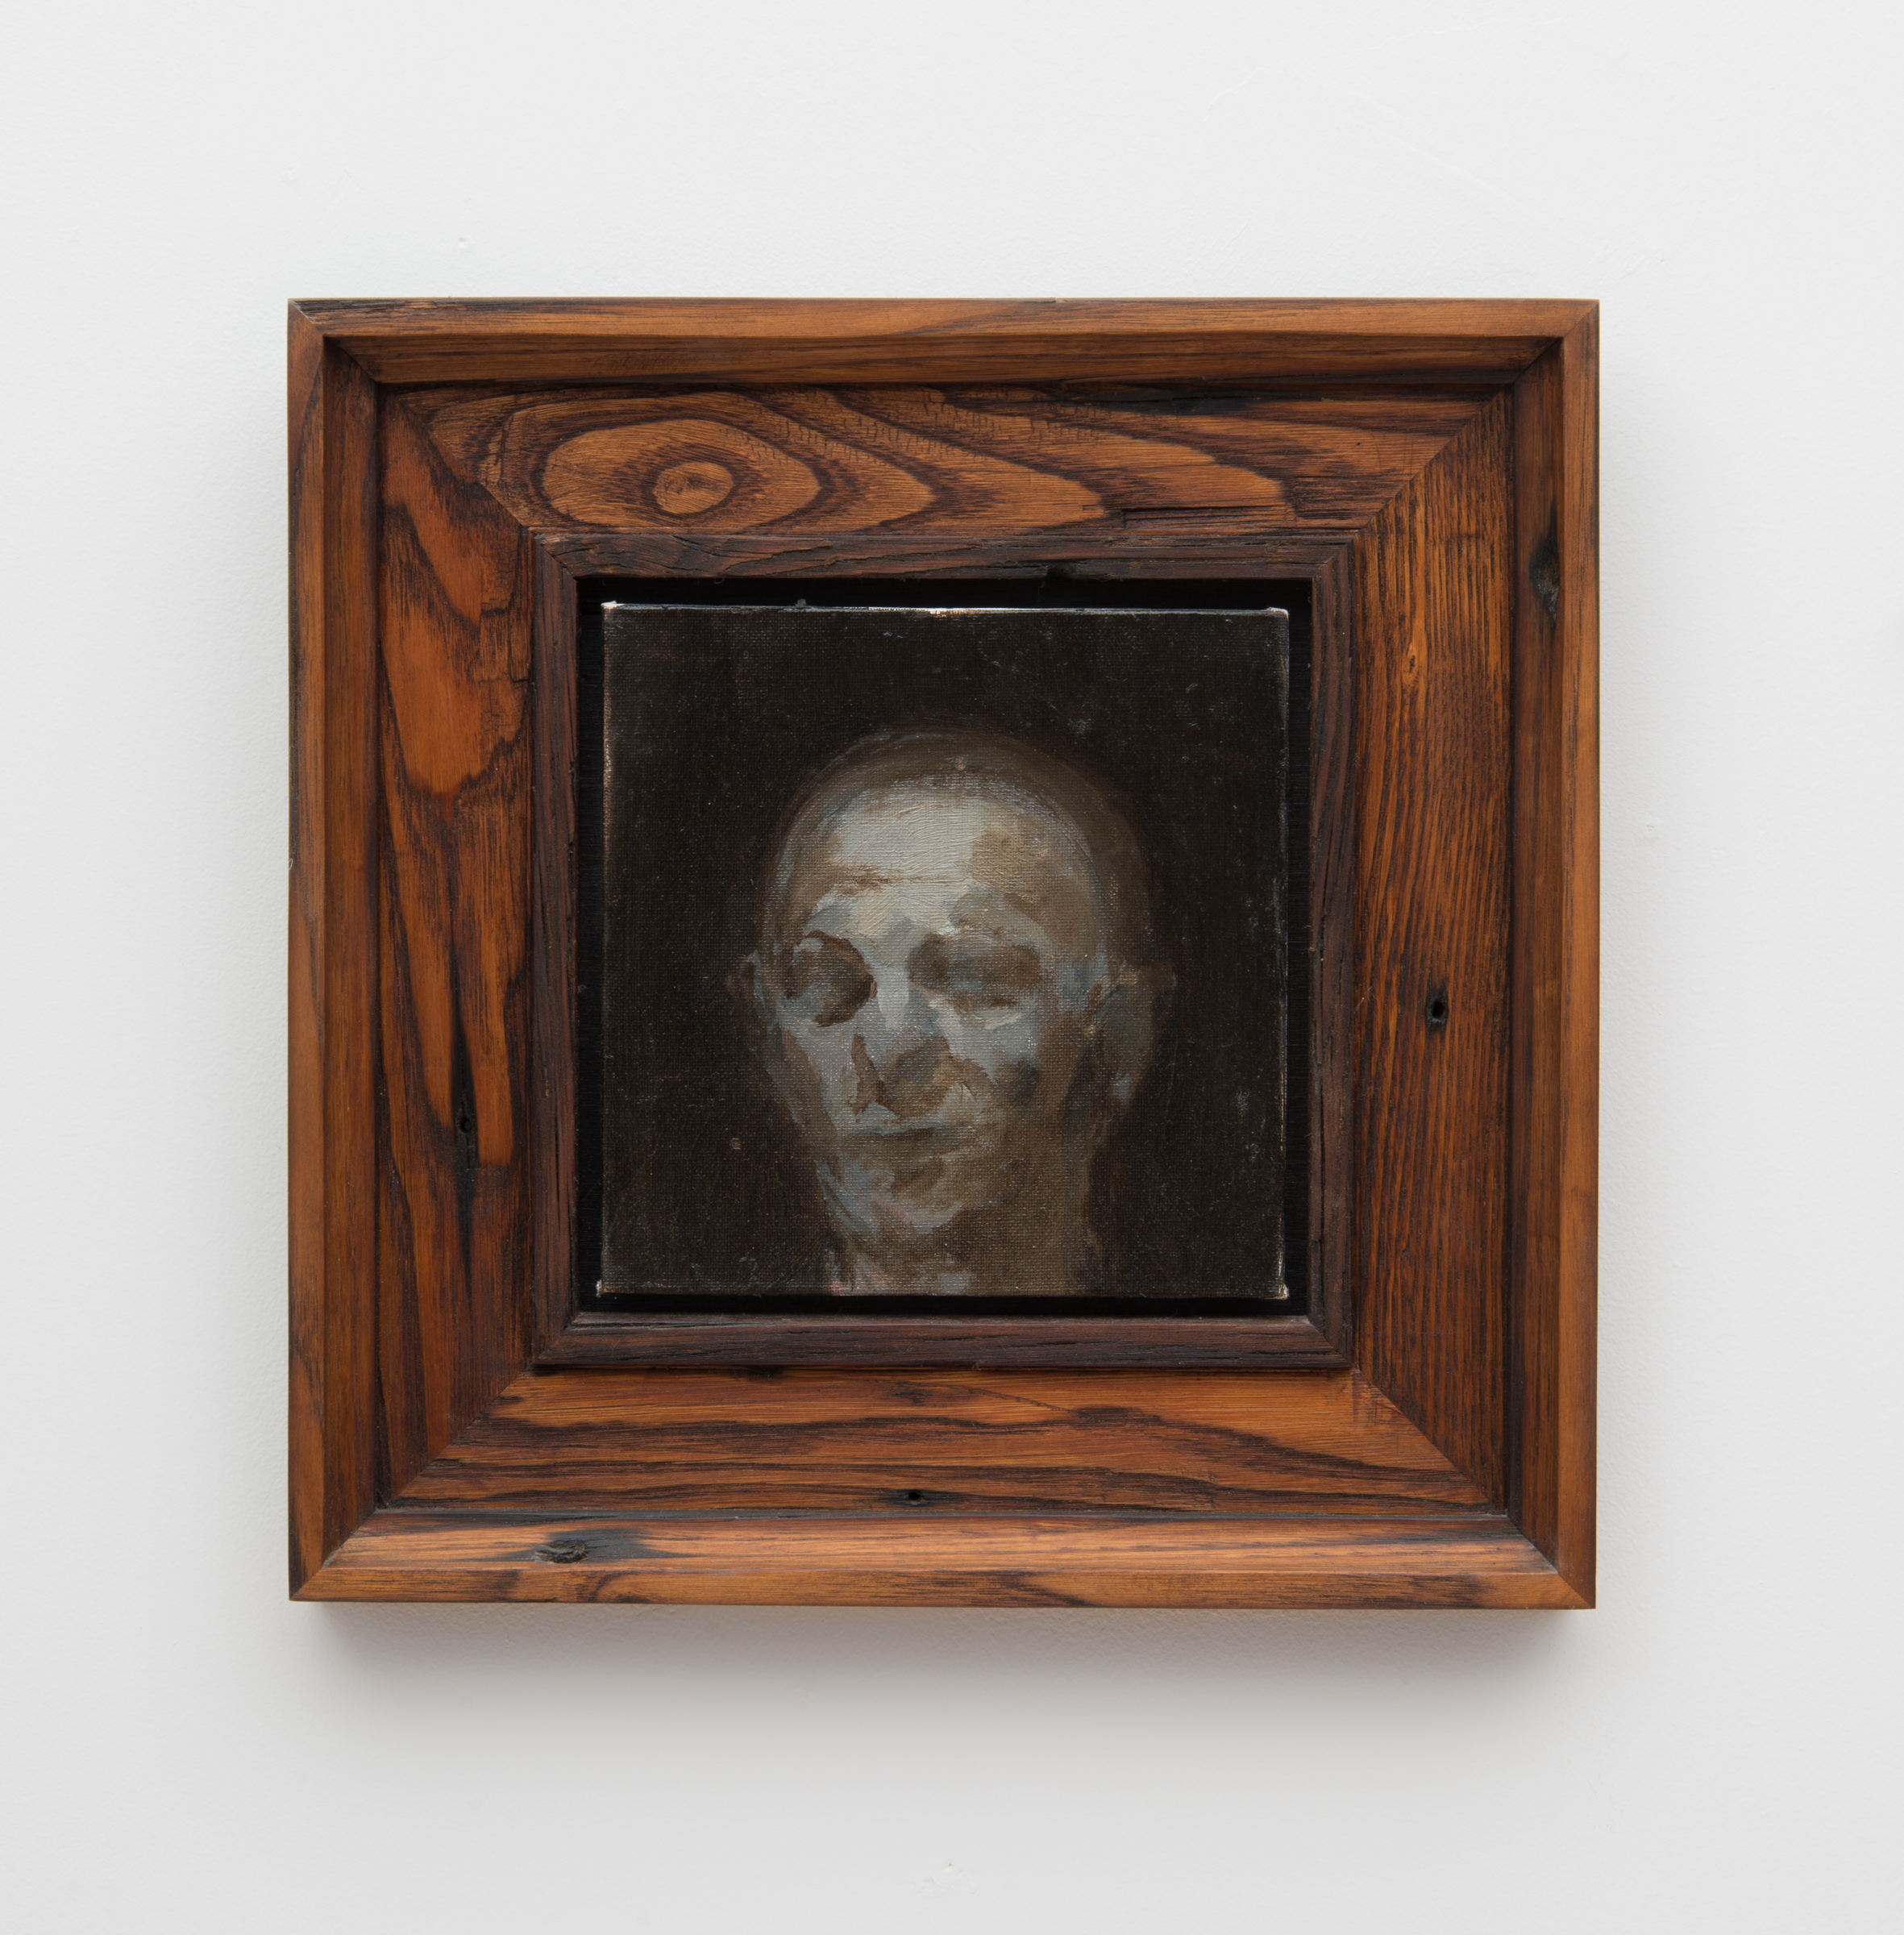 Timothy Wilson painting in reclaimed chestnut canvas float frame in a custom profile finished in oil and wax